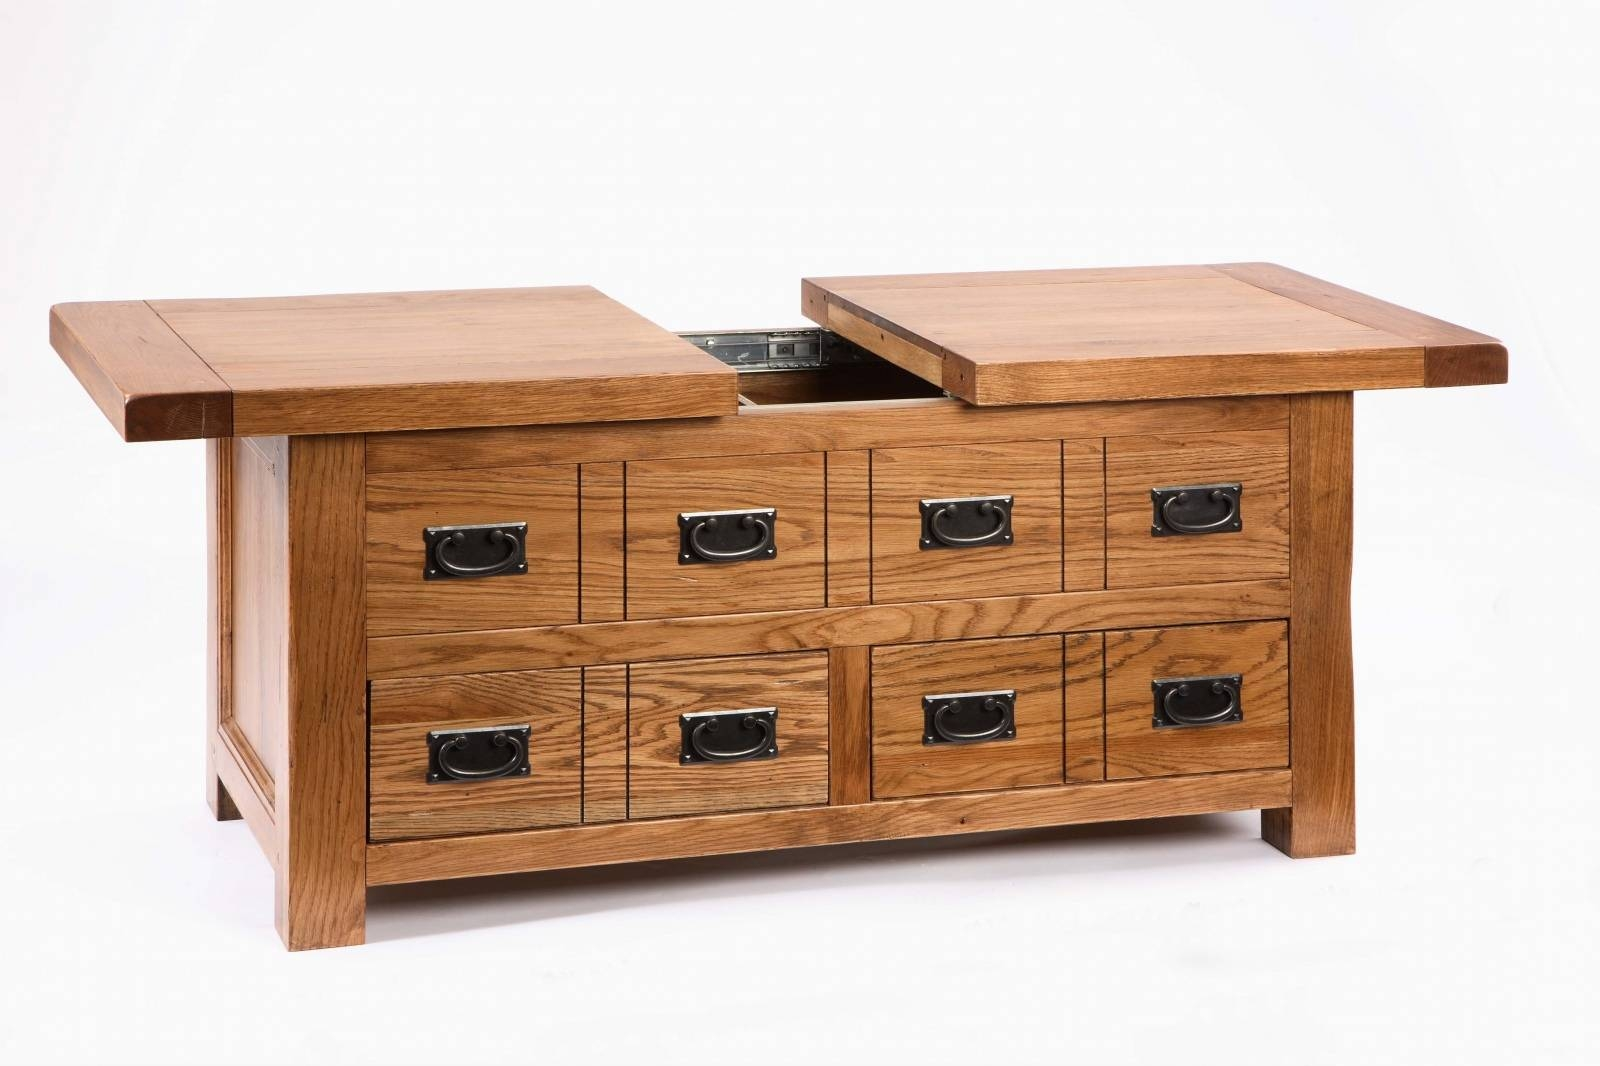 Wood Coffee Table With Storage | Coffee Tables Decoration intended for Coffee Tables With Storage (Image 30 of 30)